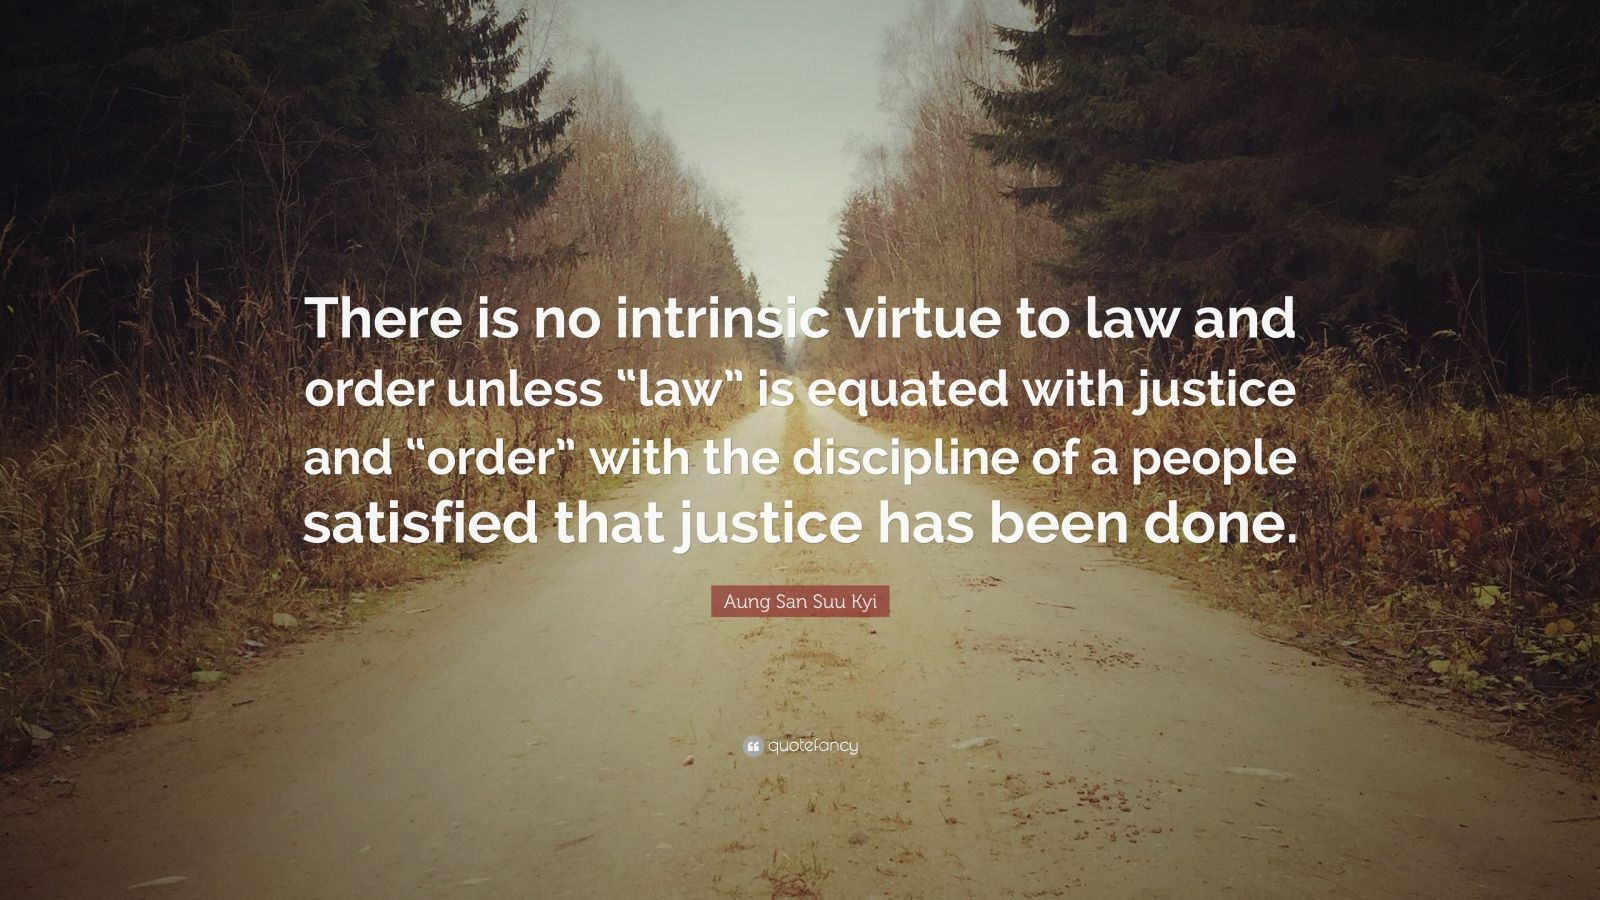 """Aung San Suu Kyi Quote: """"There is no intrinsic virtue to law and order unless """"law"""" is equated with justice and """"order"""" with the discipline of a people satisfied that justice has been done."""""""